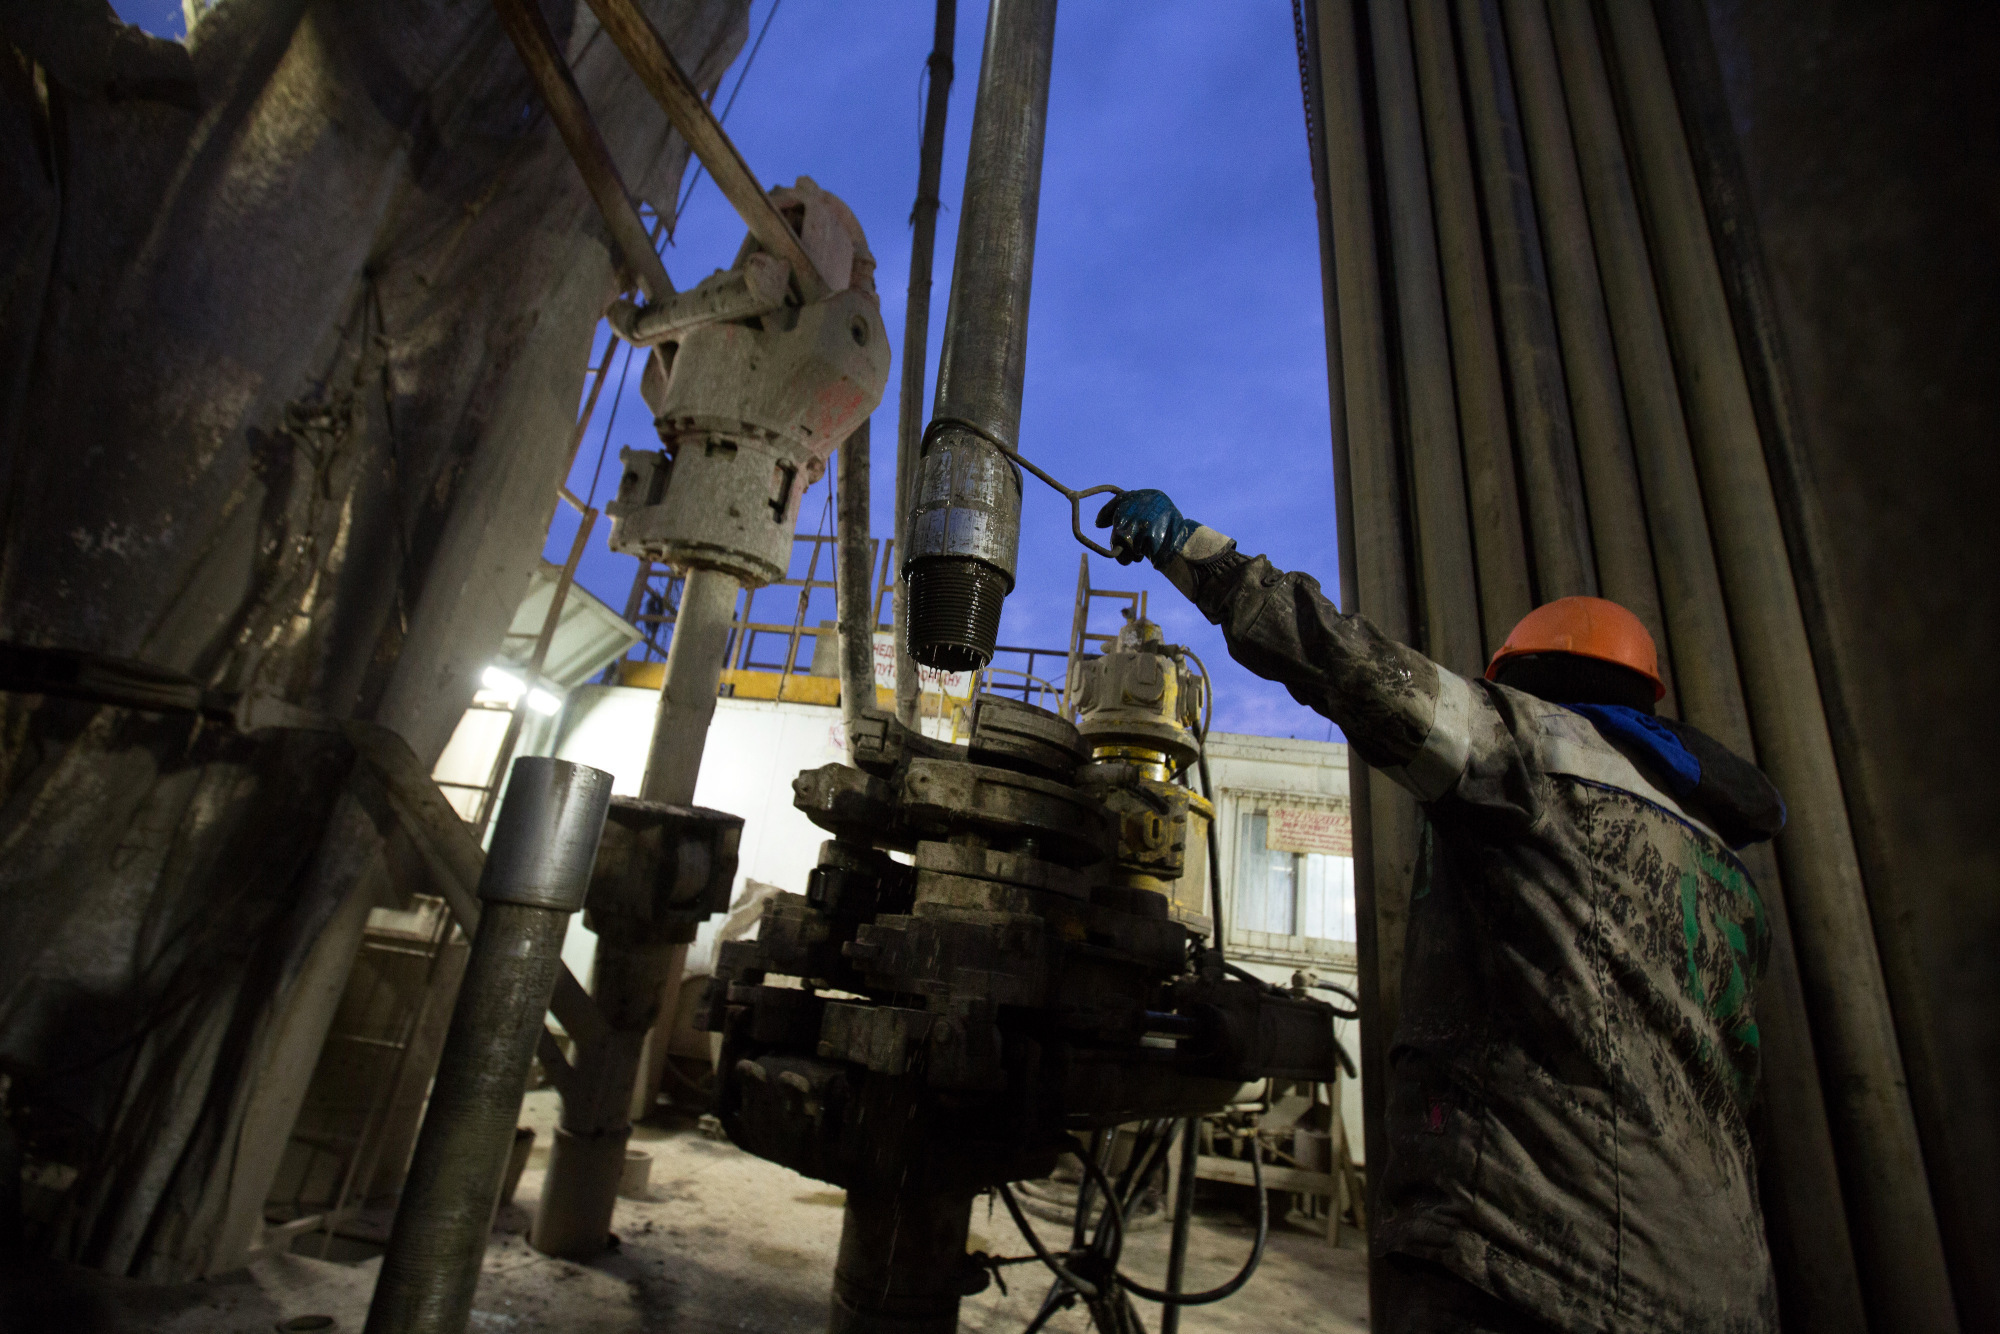 OPEC and Russia ready to extend oil-supply cuts through 2018